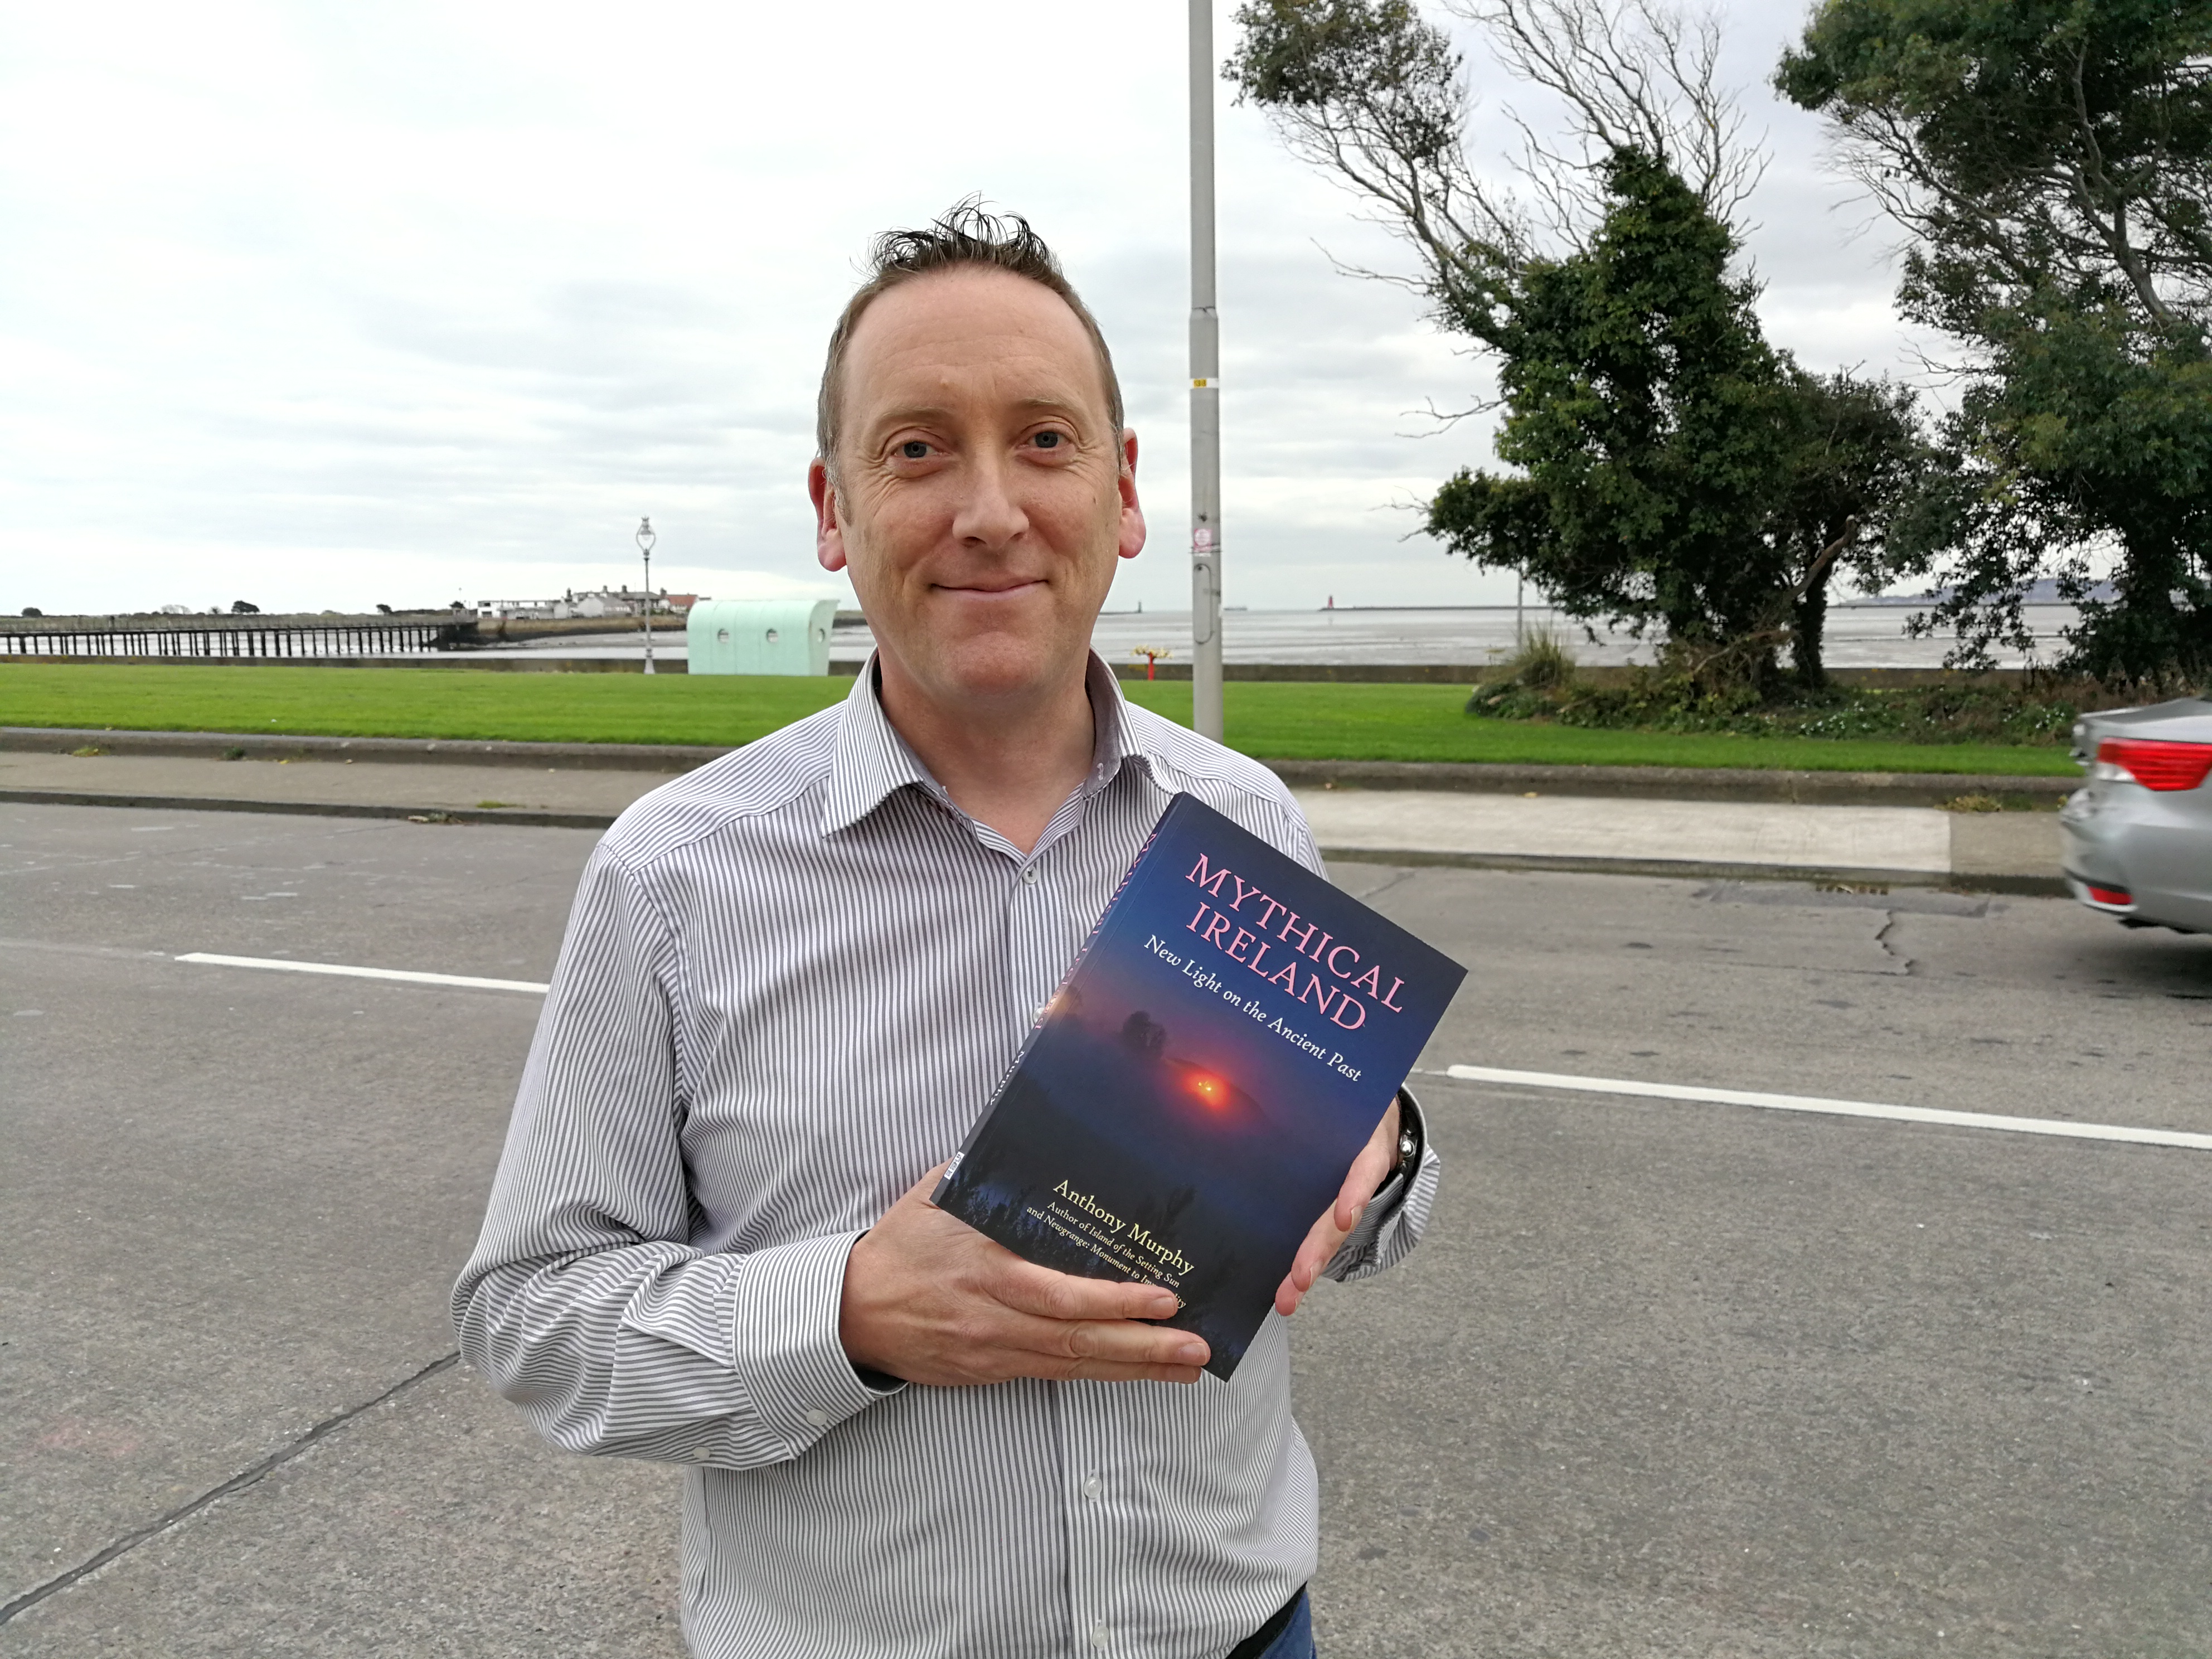 Anthony Murphy with Mythical Ireland book